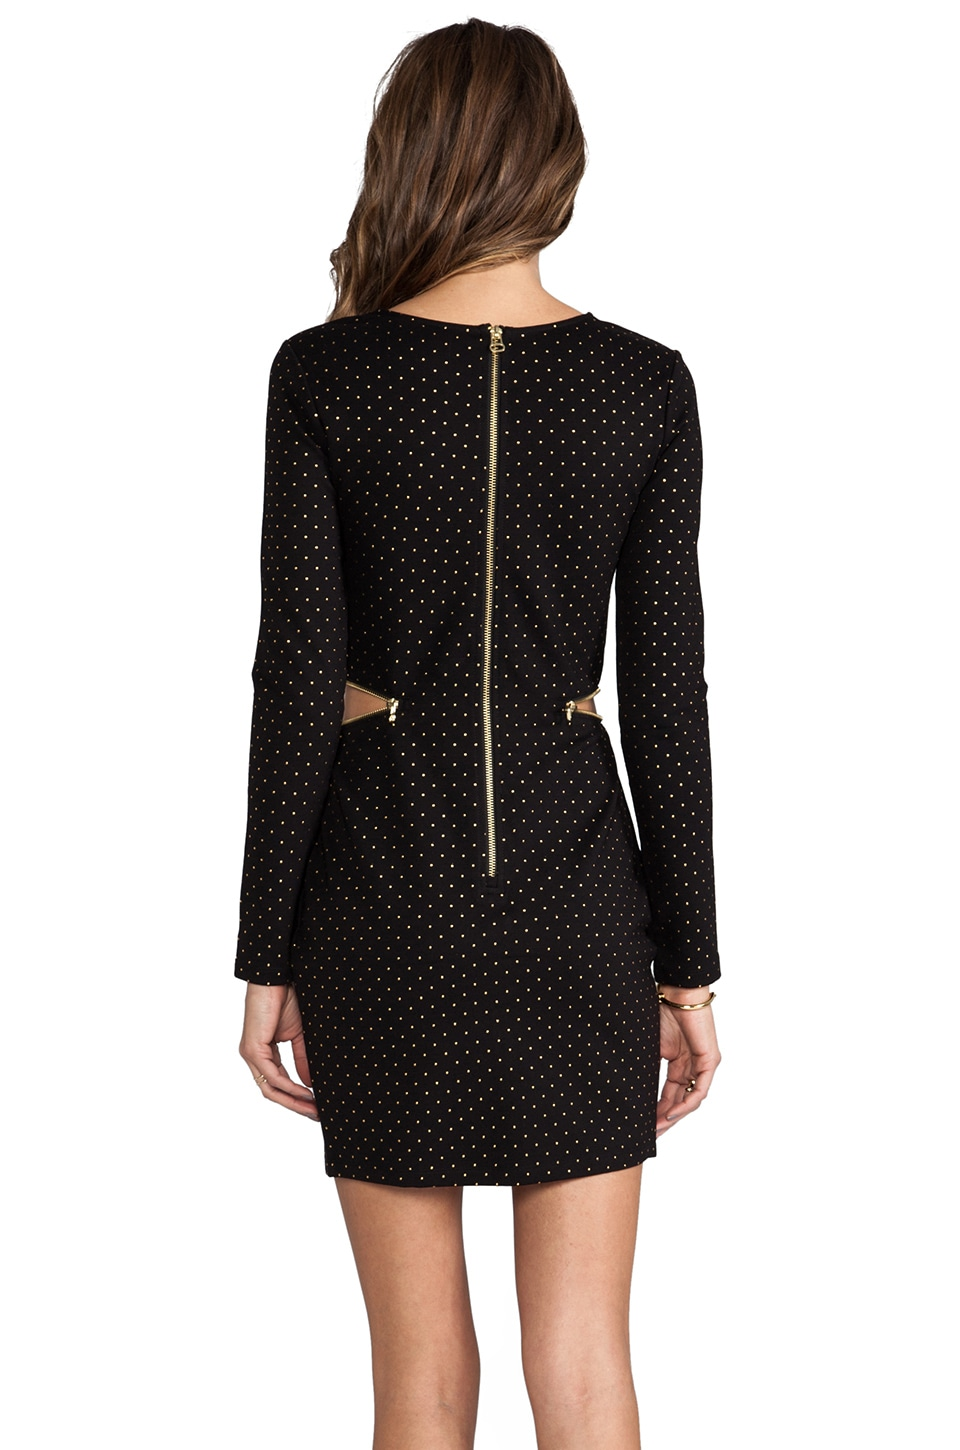 Dolce Vita Bing Gold Dots Dress in Black